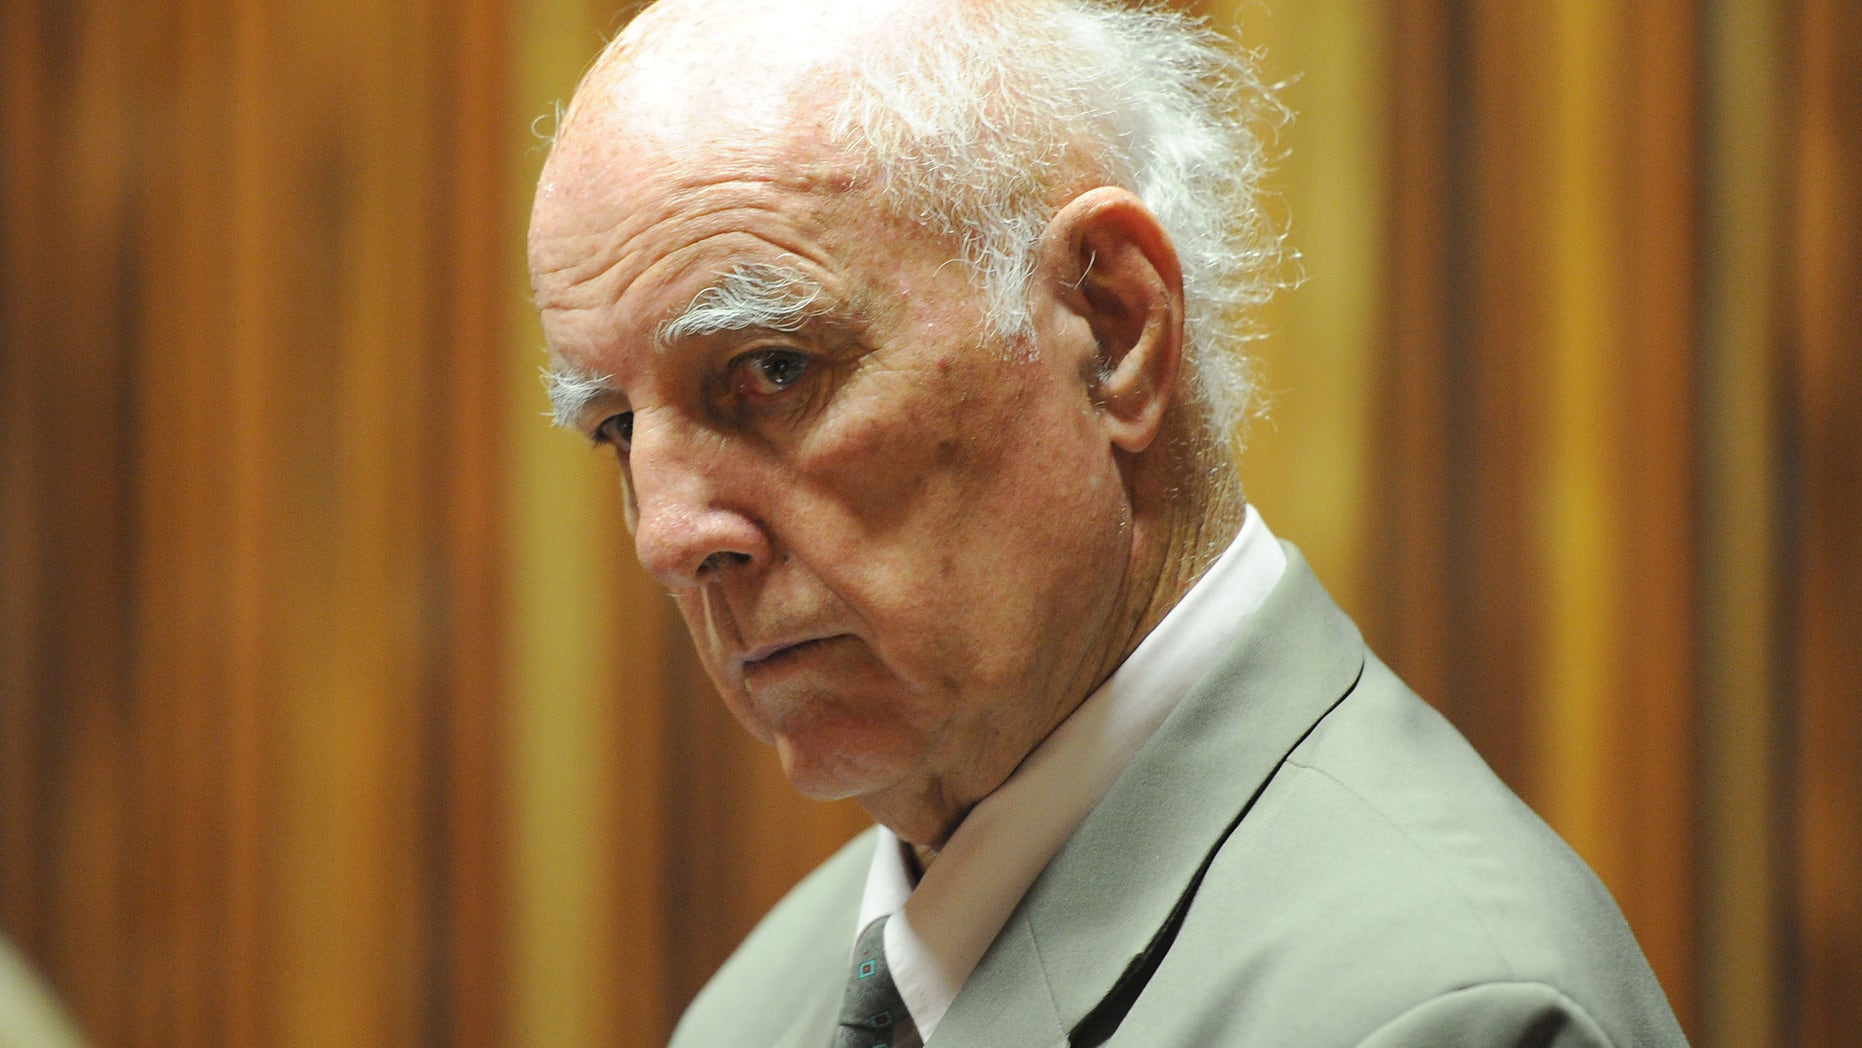 March 23, 2015 - Retired tennis player Bob Hewitt in court east of Johannesburg, South Africa. Hewitt, a former Grand Slam doubles tennis champion, was convicted of rape and sexual assault decades after the alleged assaults.